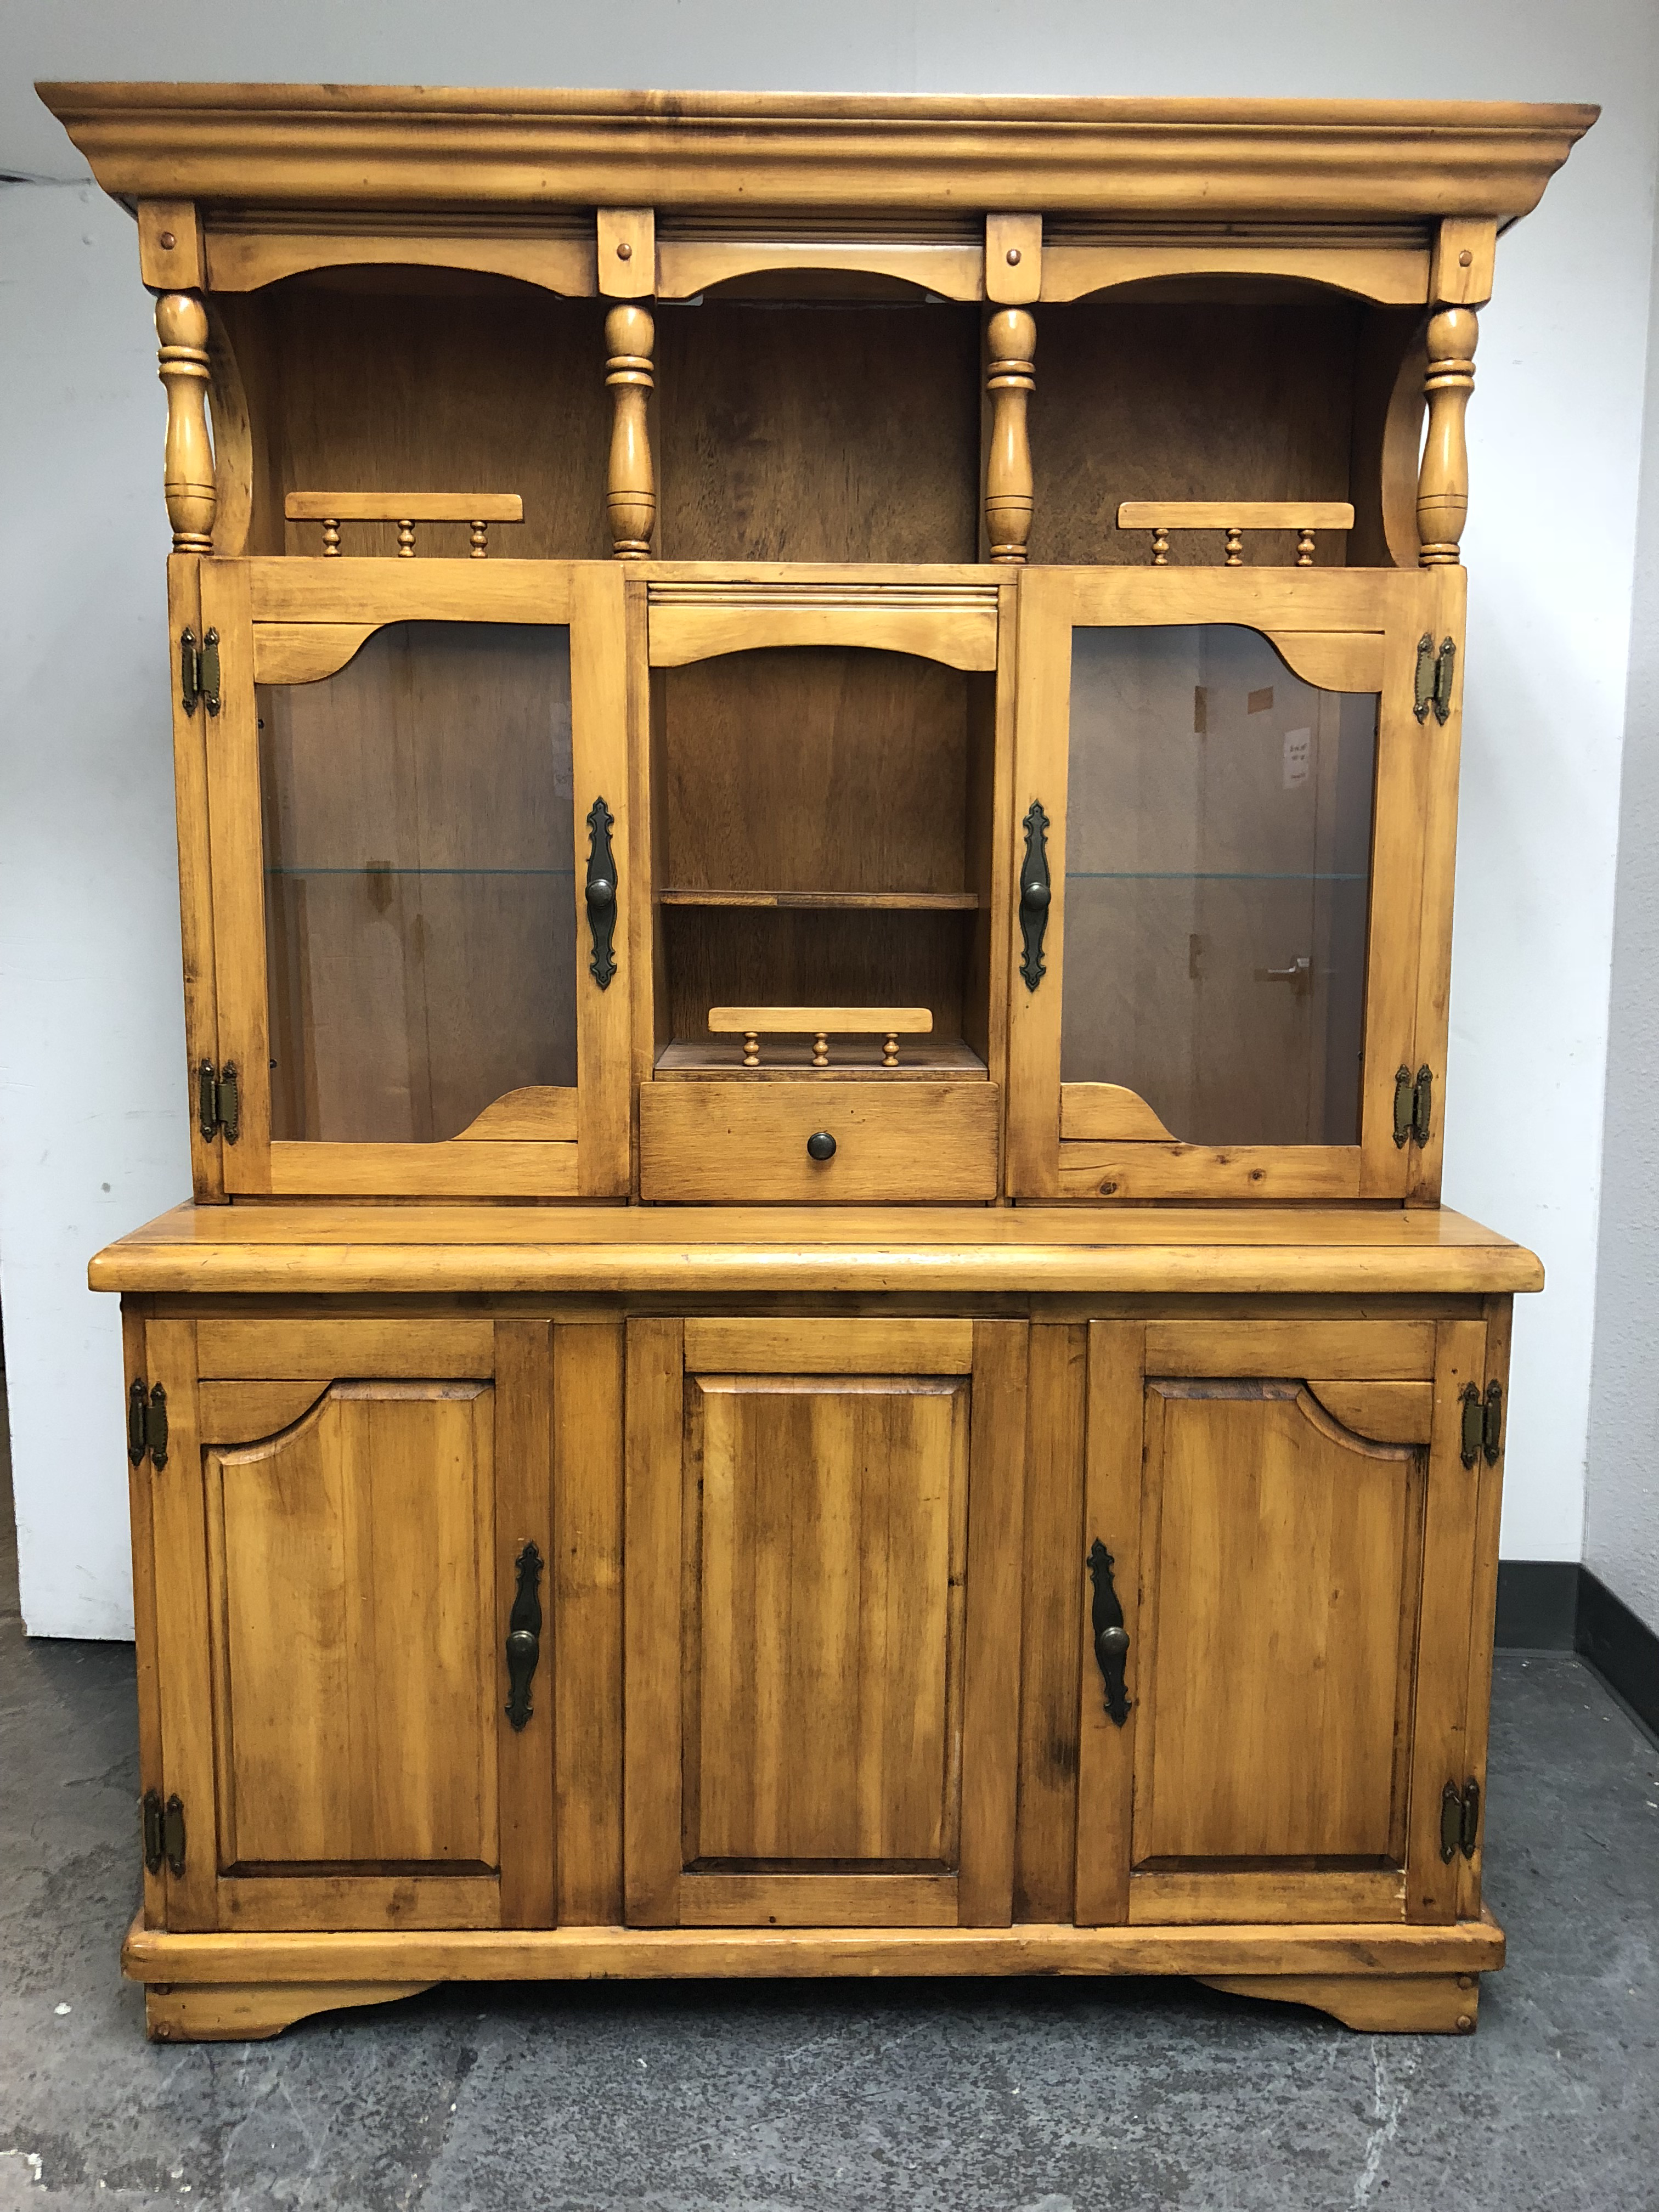 Superieur Design Plus Gallery Presents A Wood China Cabinet. This Two Piece Display  Cabinet Has Plateful